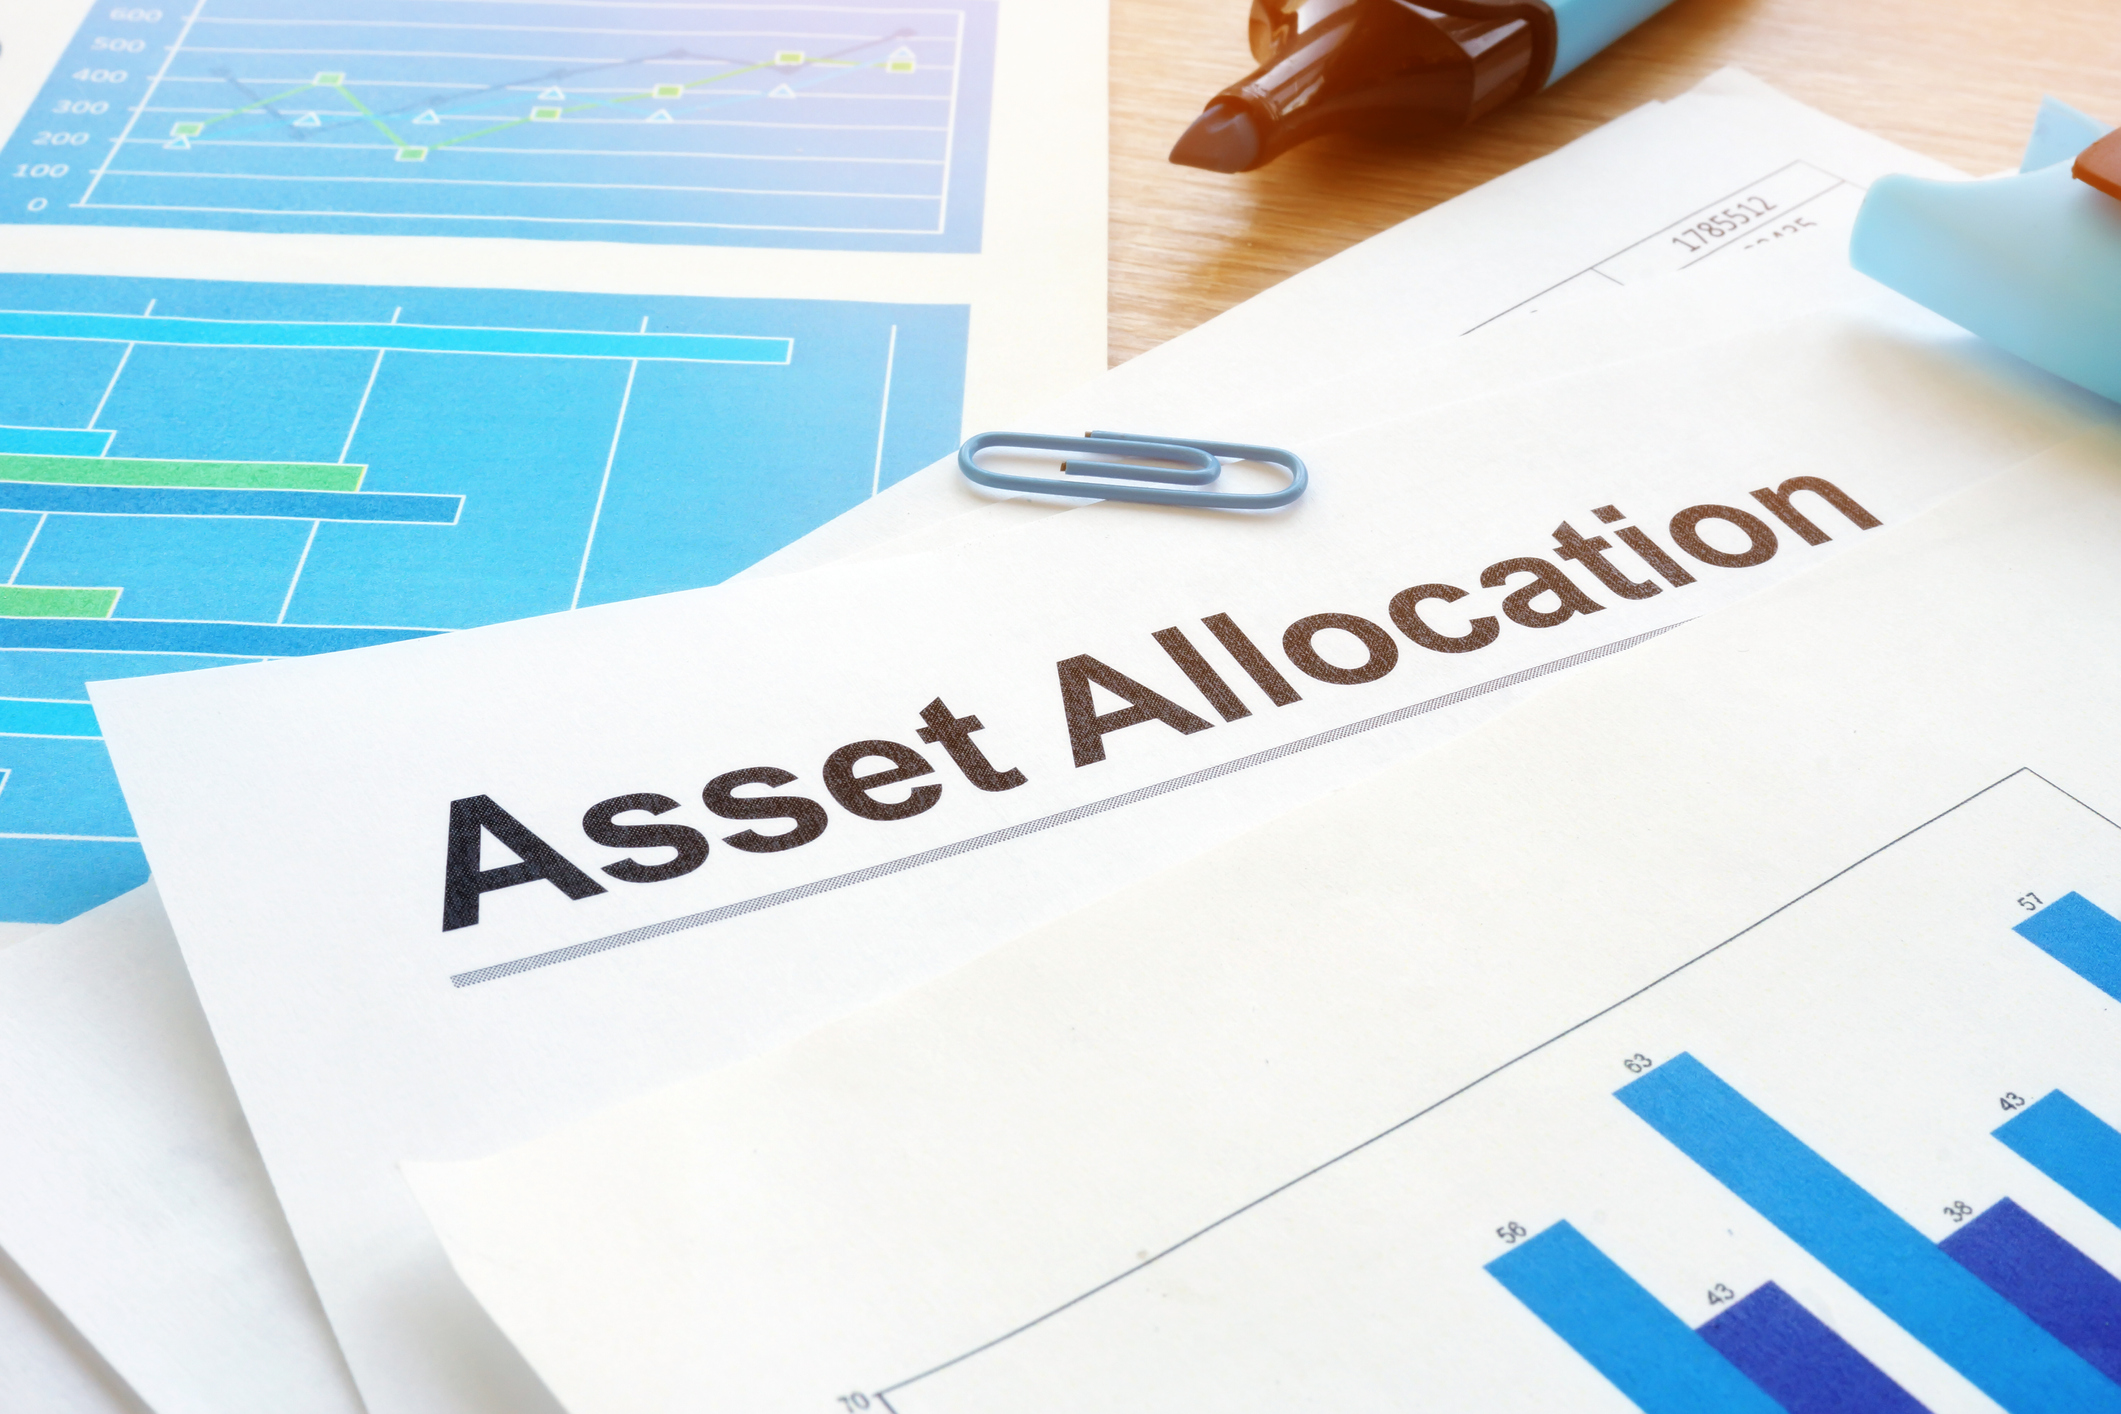 How Should I Allocate My Assets?